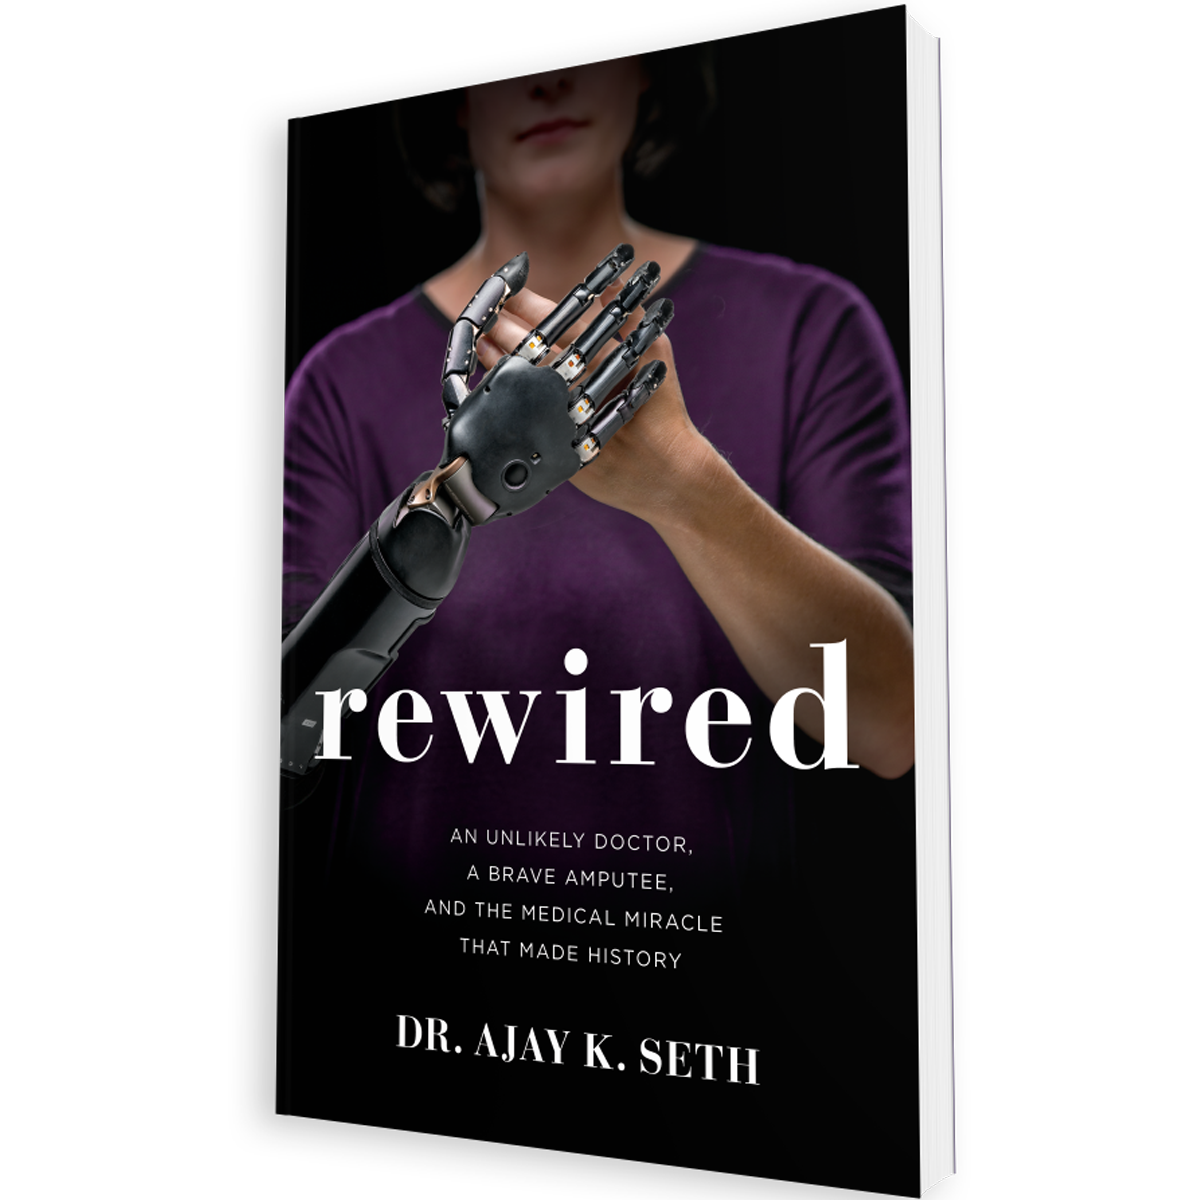 Rewired: An unlikely doctor, a brave amputee, and the